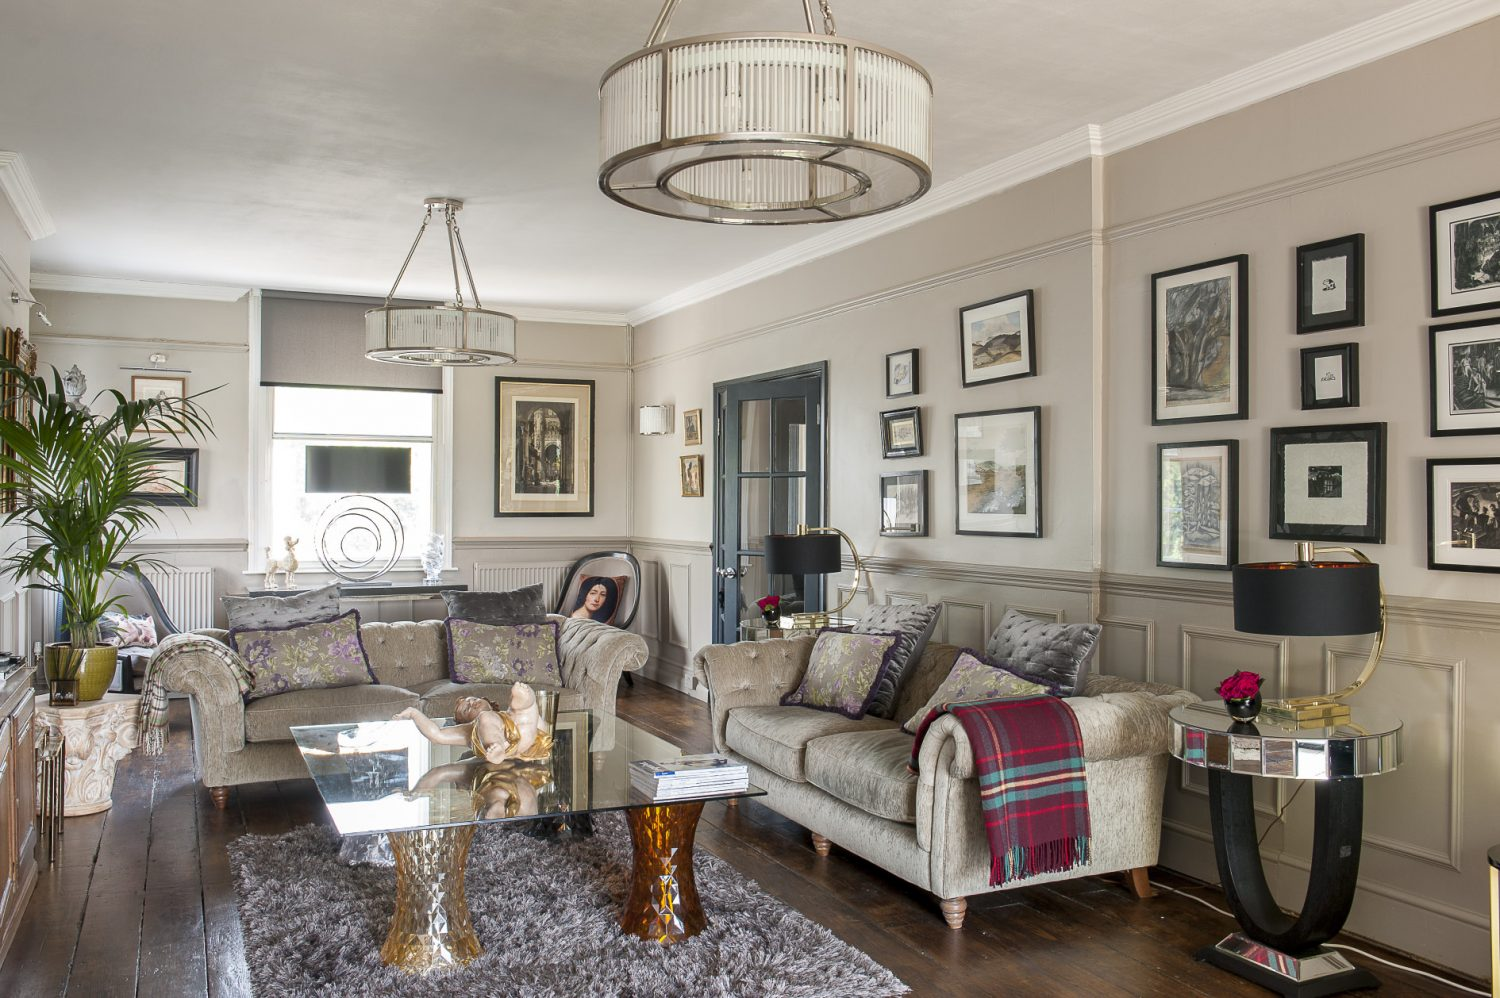 The drawing room contains matching French Deco wall and ceiling lights from WBR Interiors, a favourite shop on Wandsworth Bridge Road. Underneath is a coffee table constructed from a sheet of glass atop four Kartell Stone stools